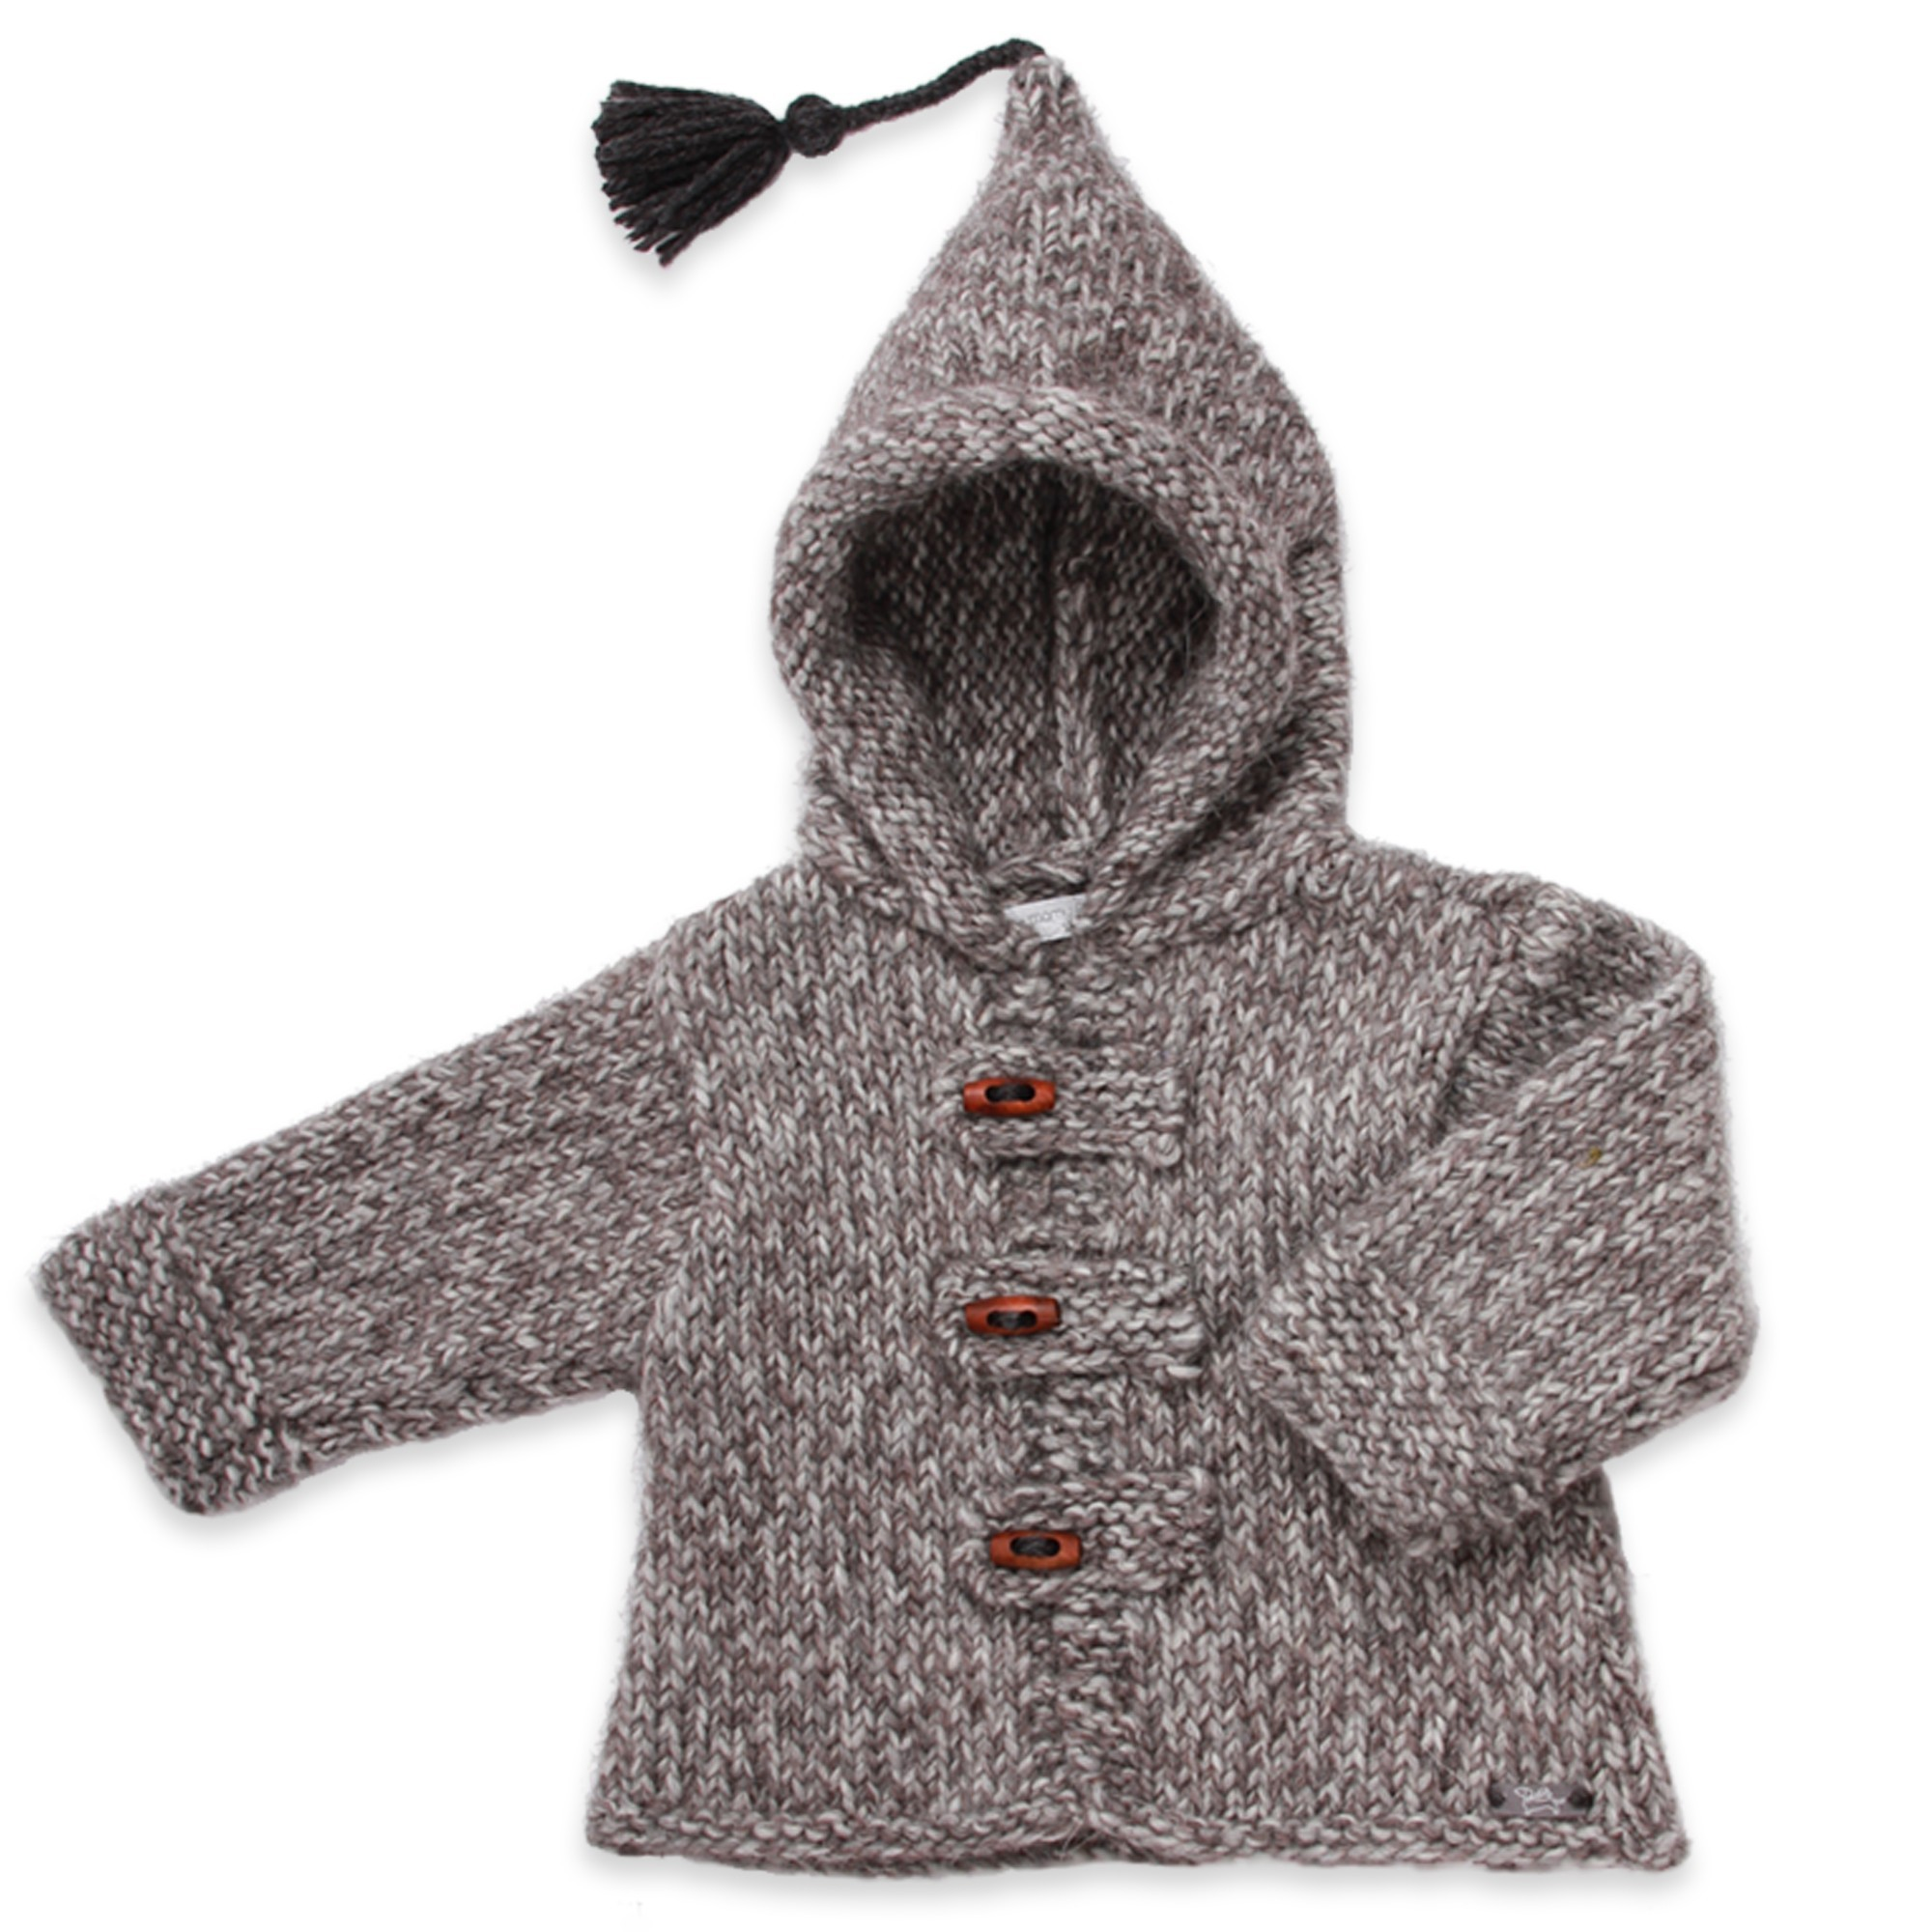 Granny S Knitwear Knitted Coat With Hood Made From Wool